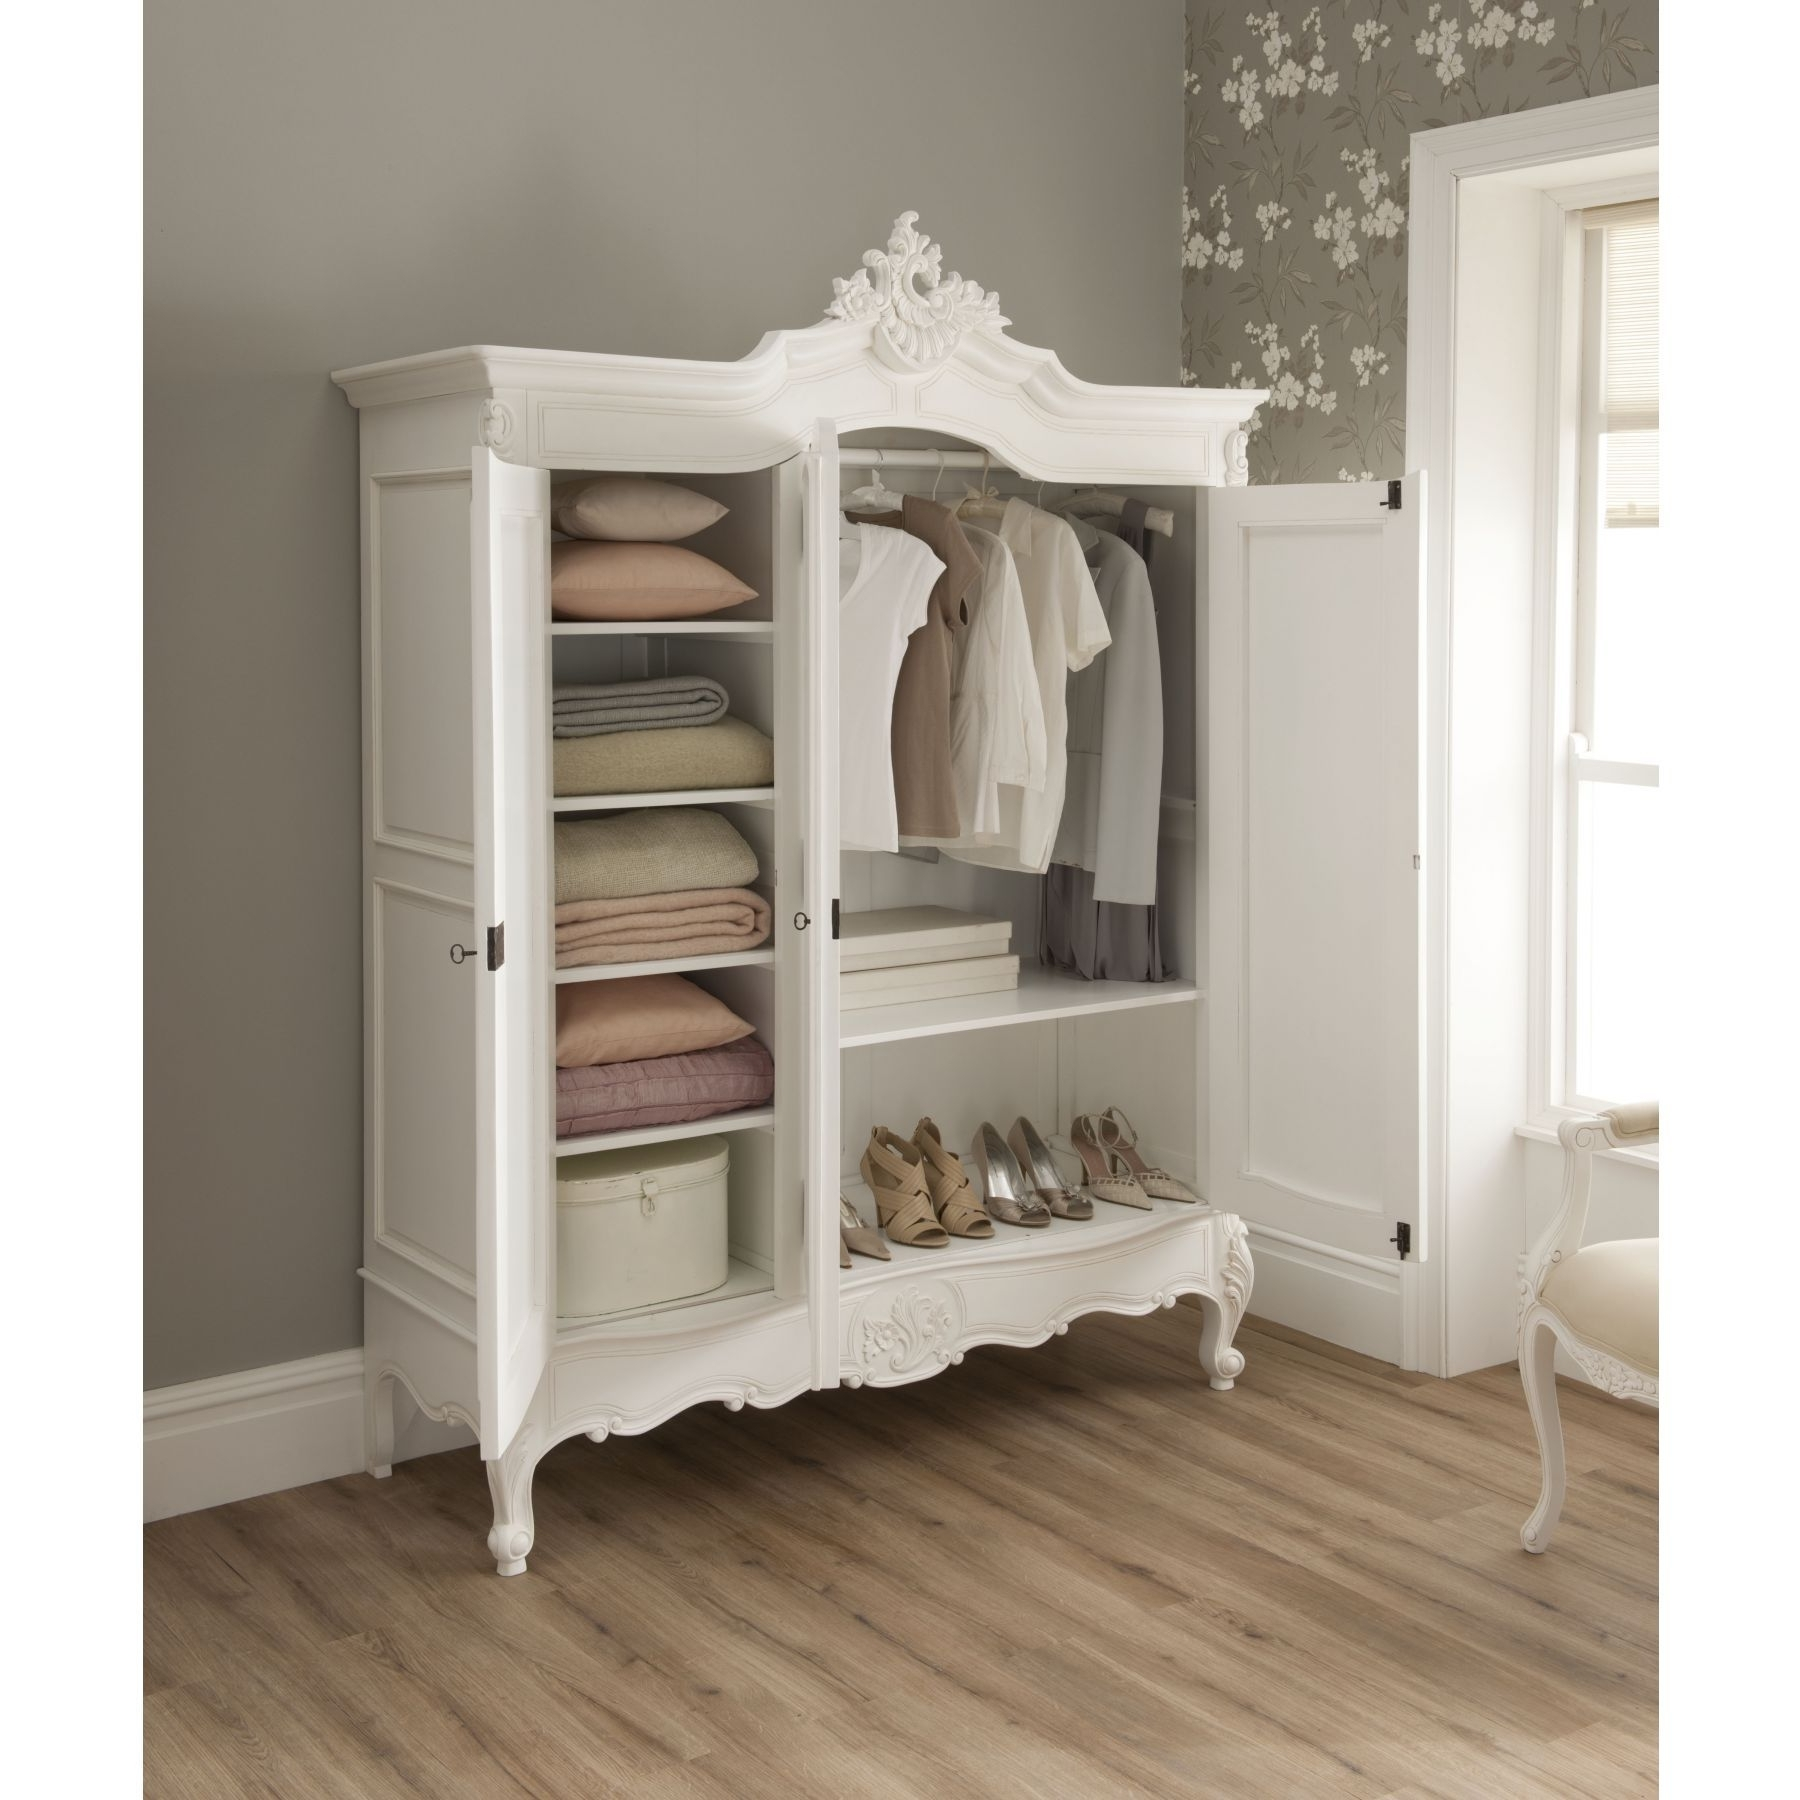 Best And Newest White Vintage Wardrobes For A Wardrobe Is The Perfect Addition To A Baby's Room To Stylishly (View 3 of 15)